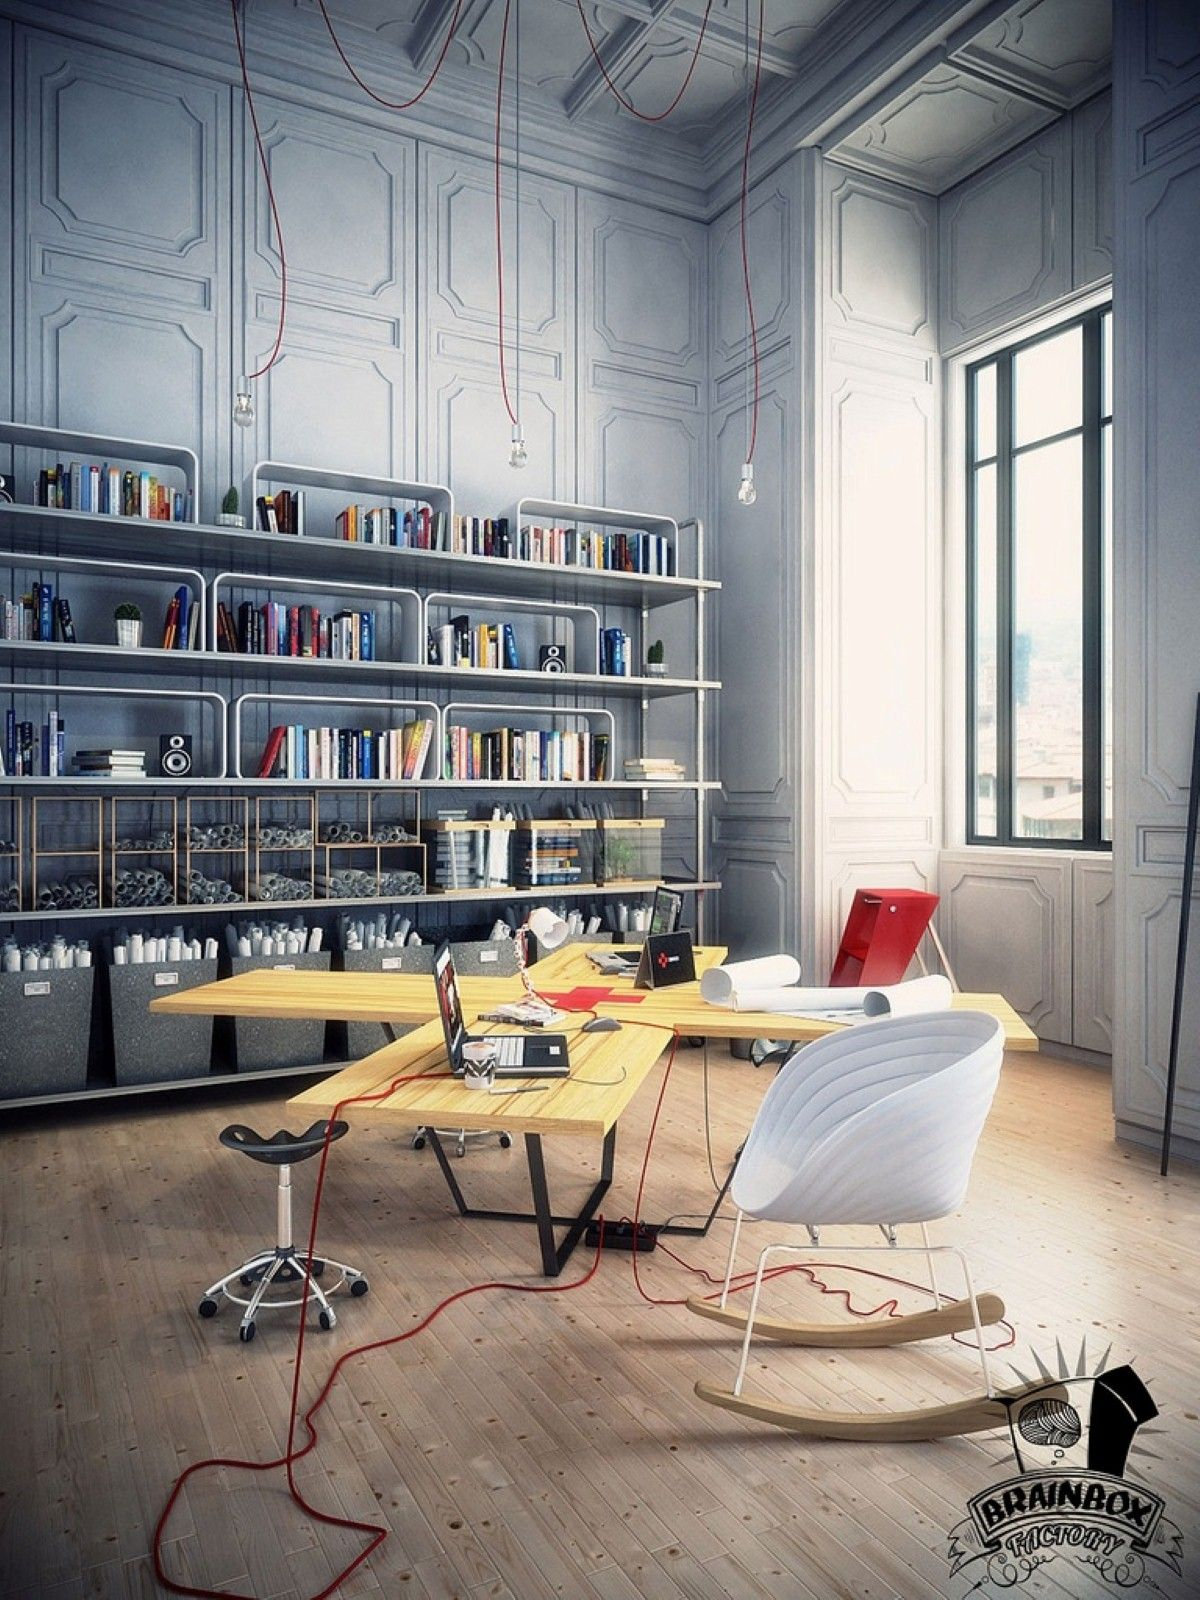 Cool home office designs cute home office Unique Awesome Workspace And Home Office Design Cozy Modern Home Office With Multi User Quirky Cross Desk And Cute White Rocking Chairs Pinterest Awesome Workspace And Home Office Design Cozy Modern Home Office